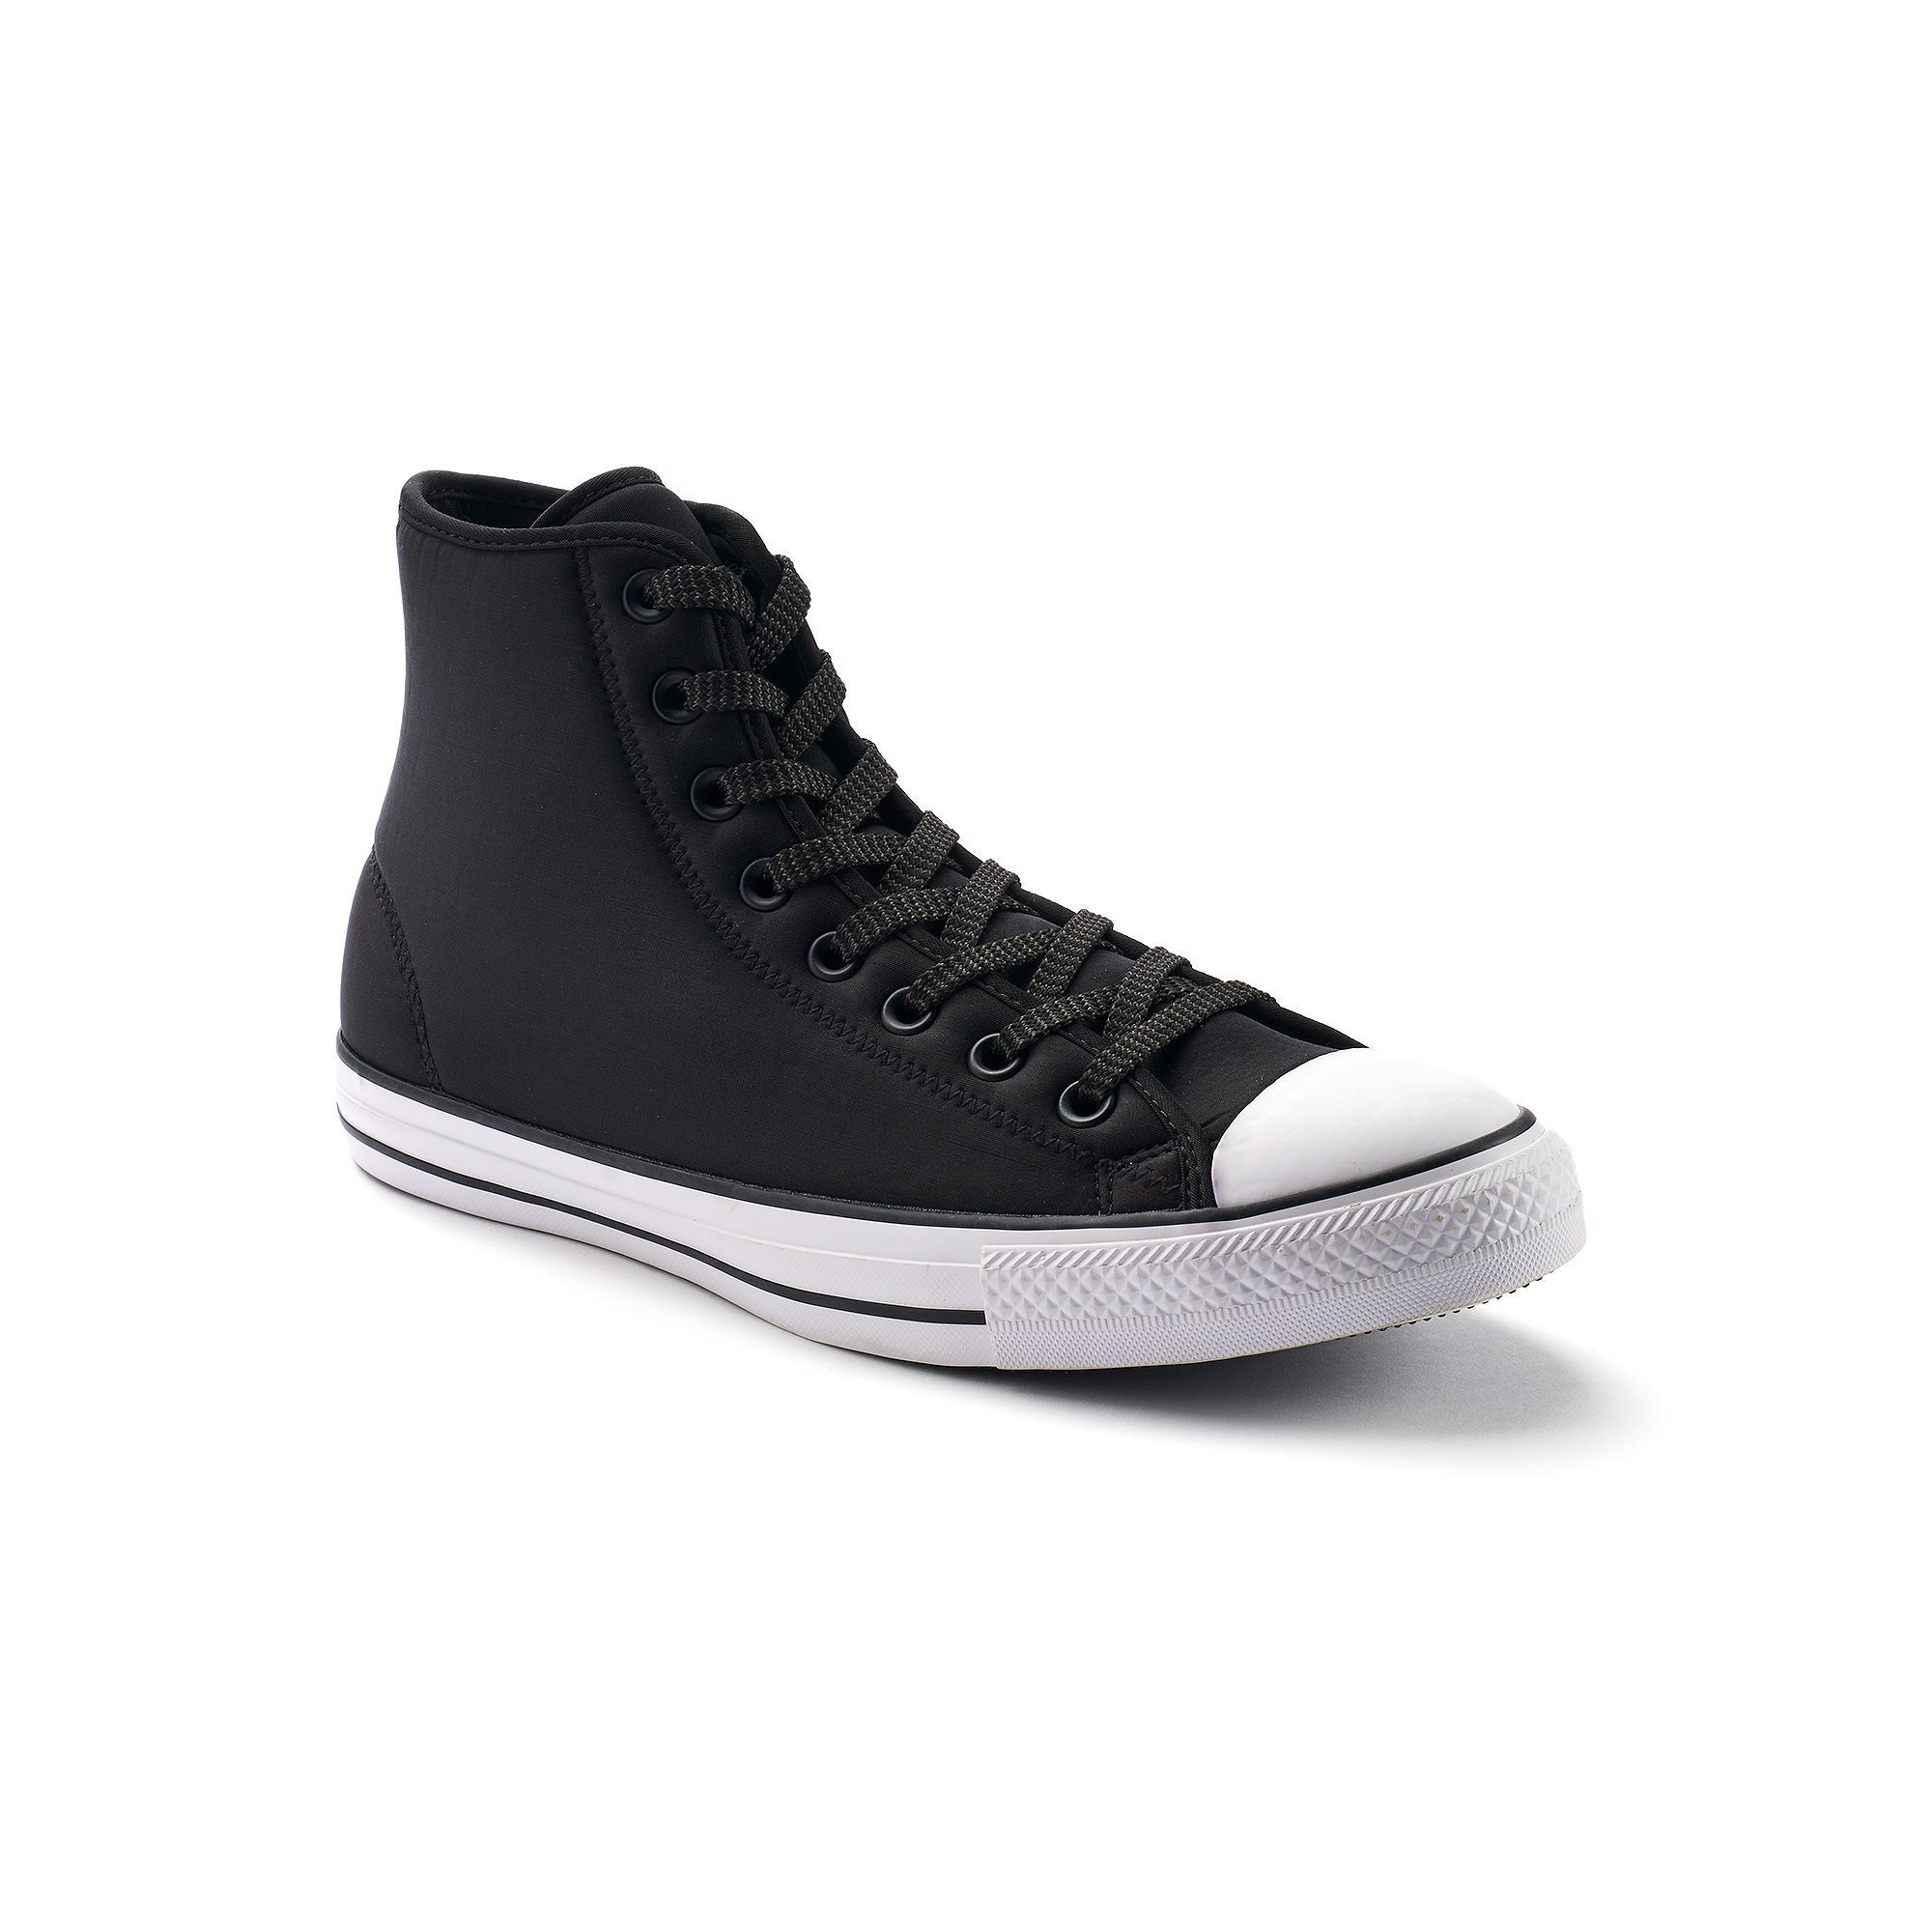 Men's Converse Chuck Taylor All Star Neoprene High Top